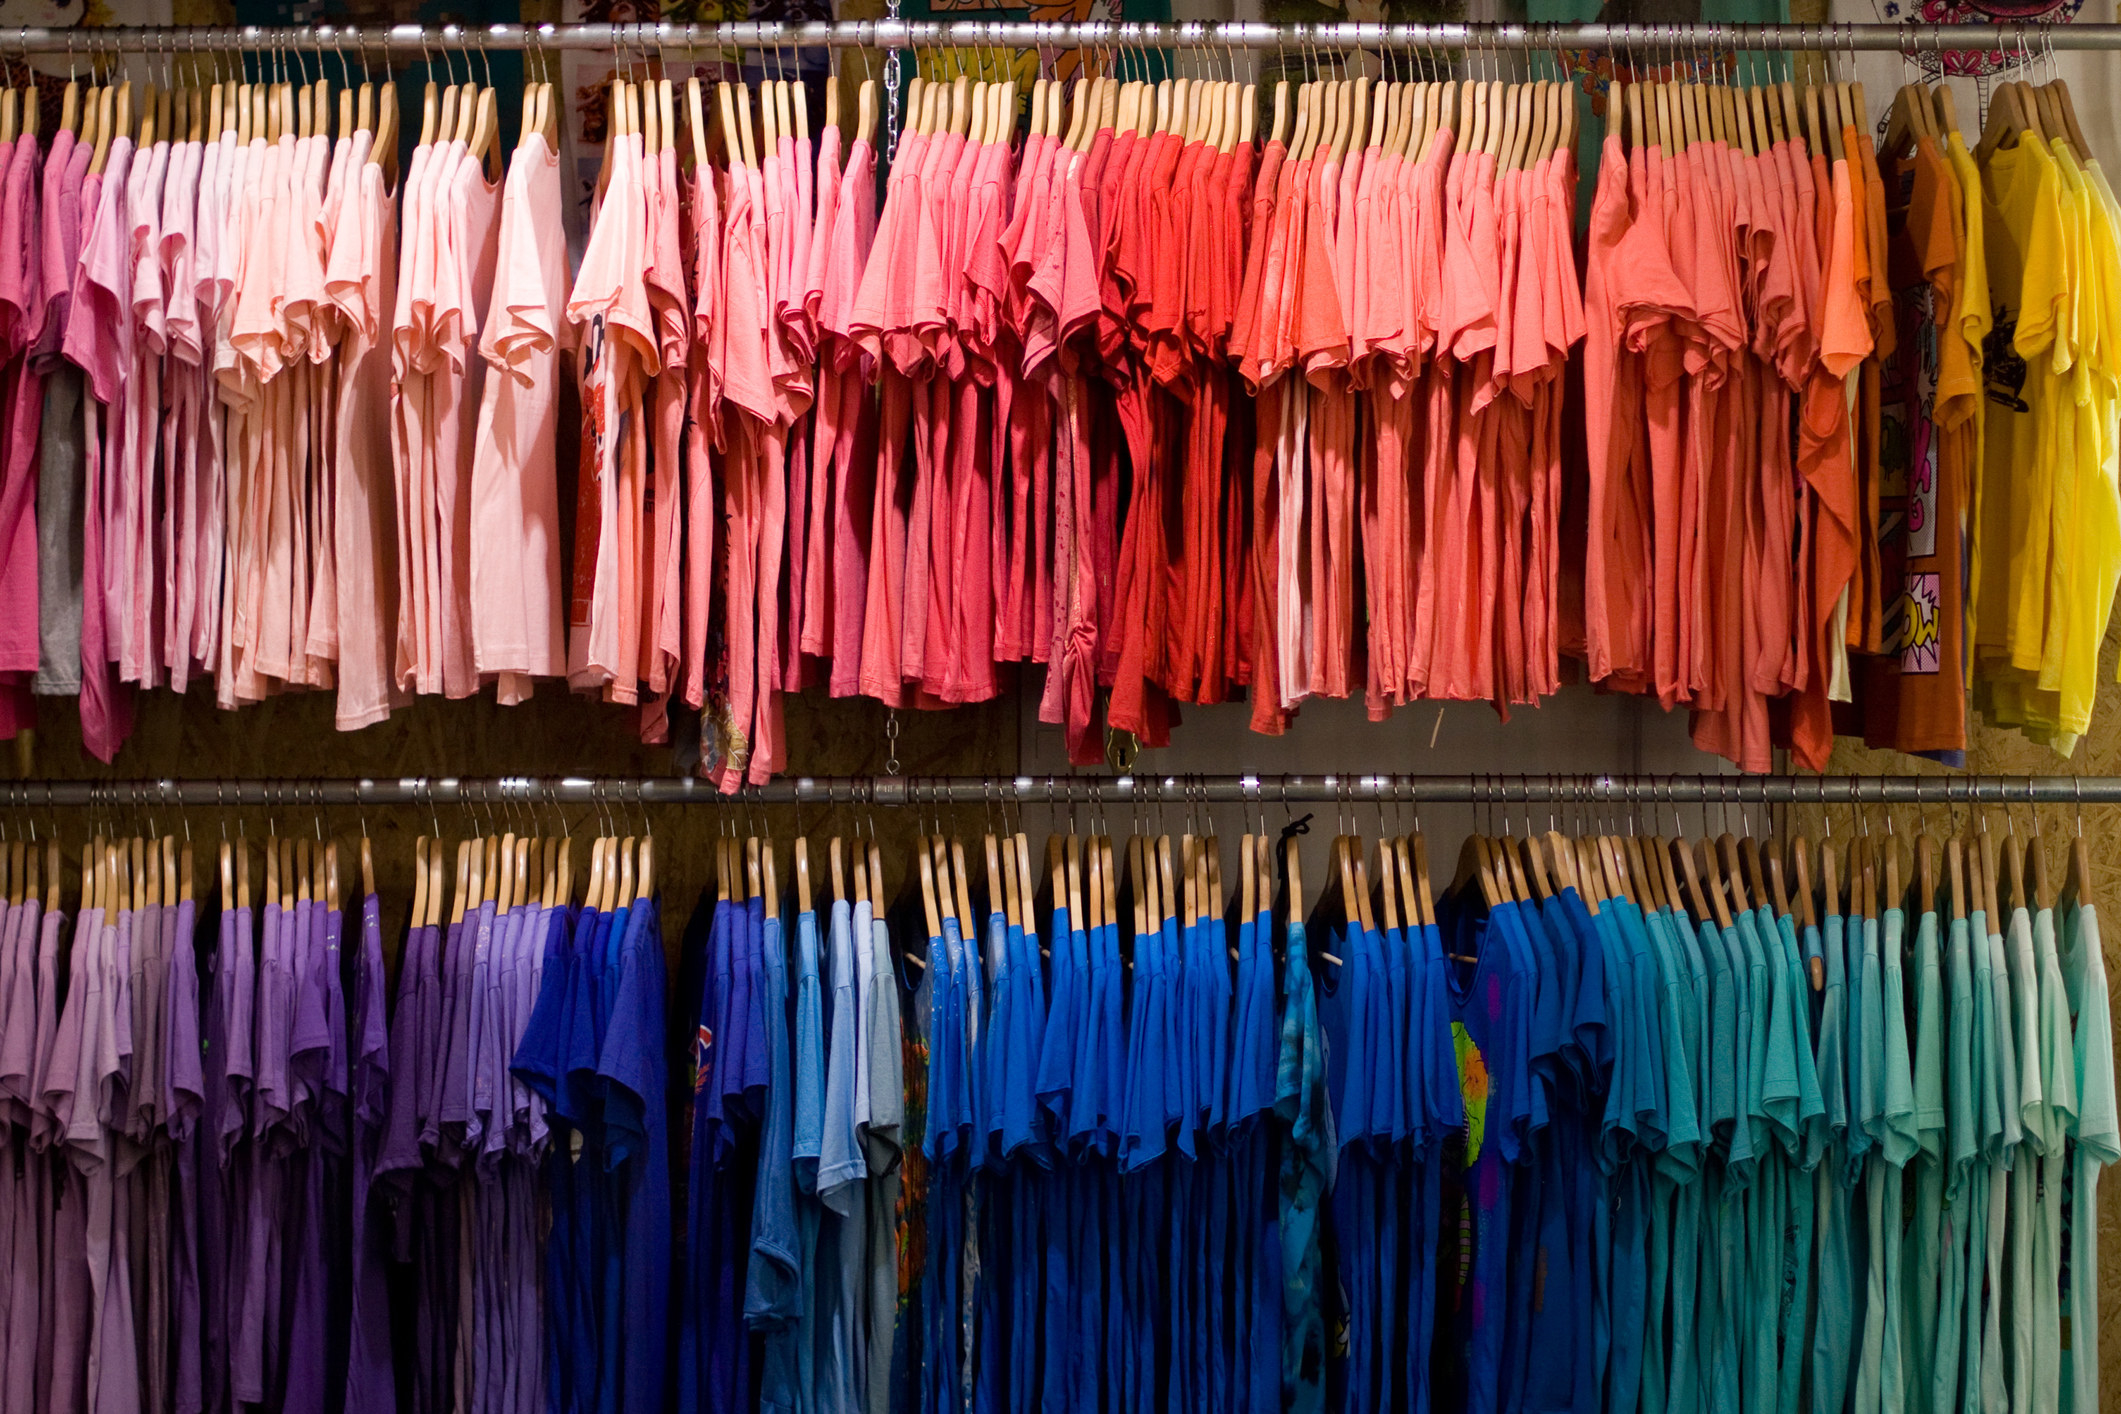 A rack of brightly colored T-shirts